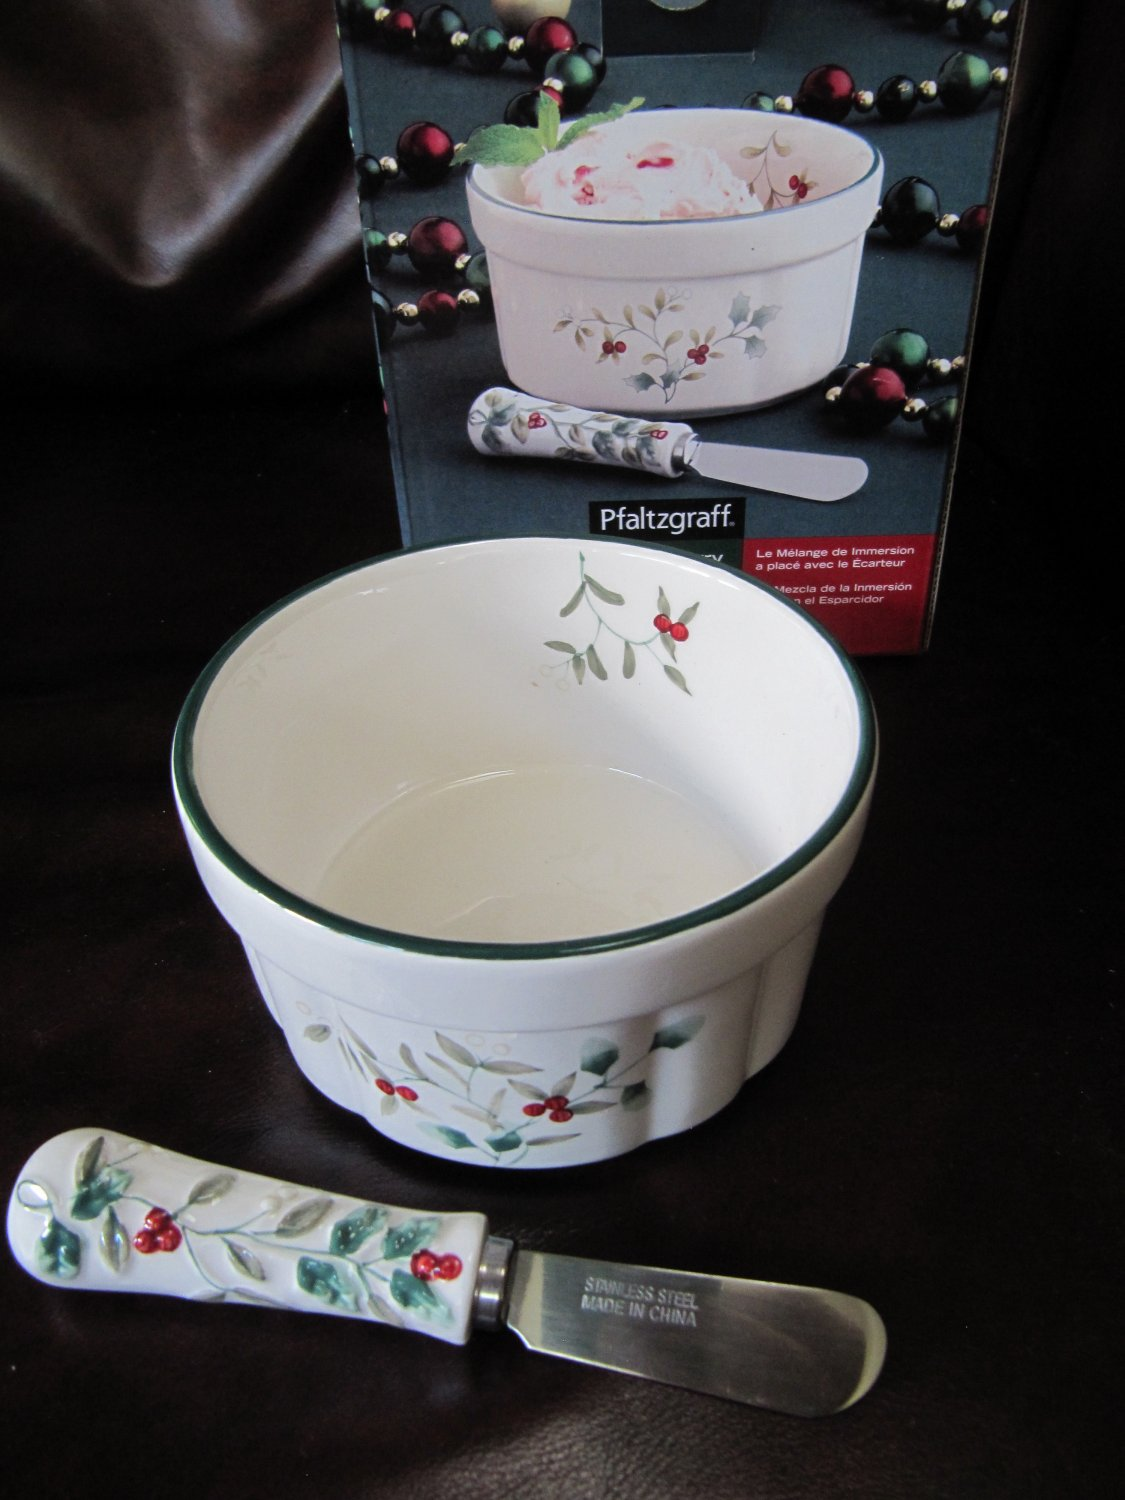 Pfaltzgraff Winterberry Dip Mix Set Bowl with Spreader Earthenware White with Holly